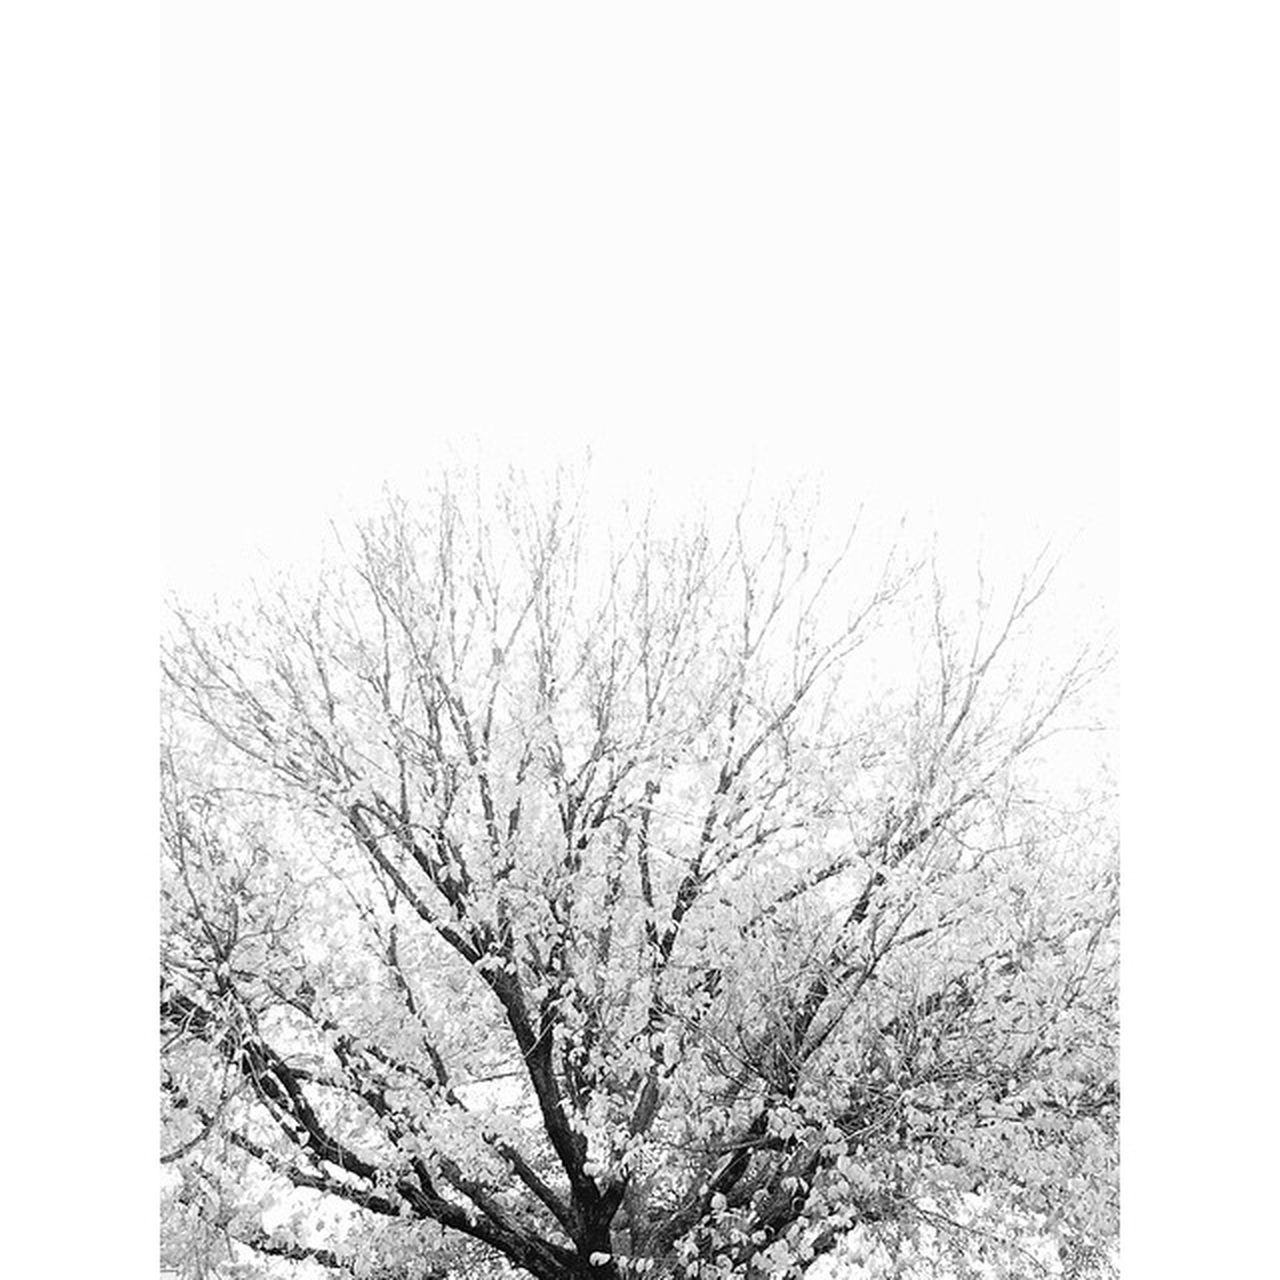 tree, nature, branch, bare tree, beauty in nature, flower, blossom, low angle view, clear sky, day, no people, tranquility, outdoors, growth, freshness, springtime, fragility, sky